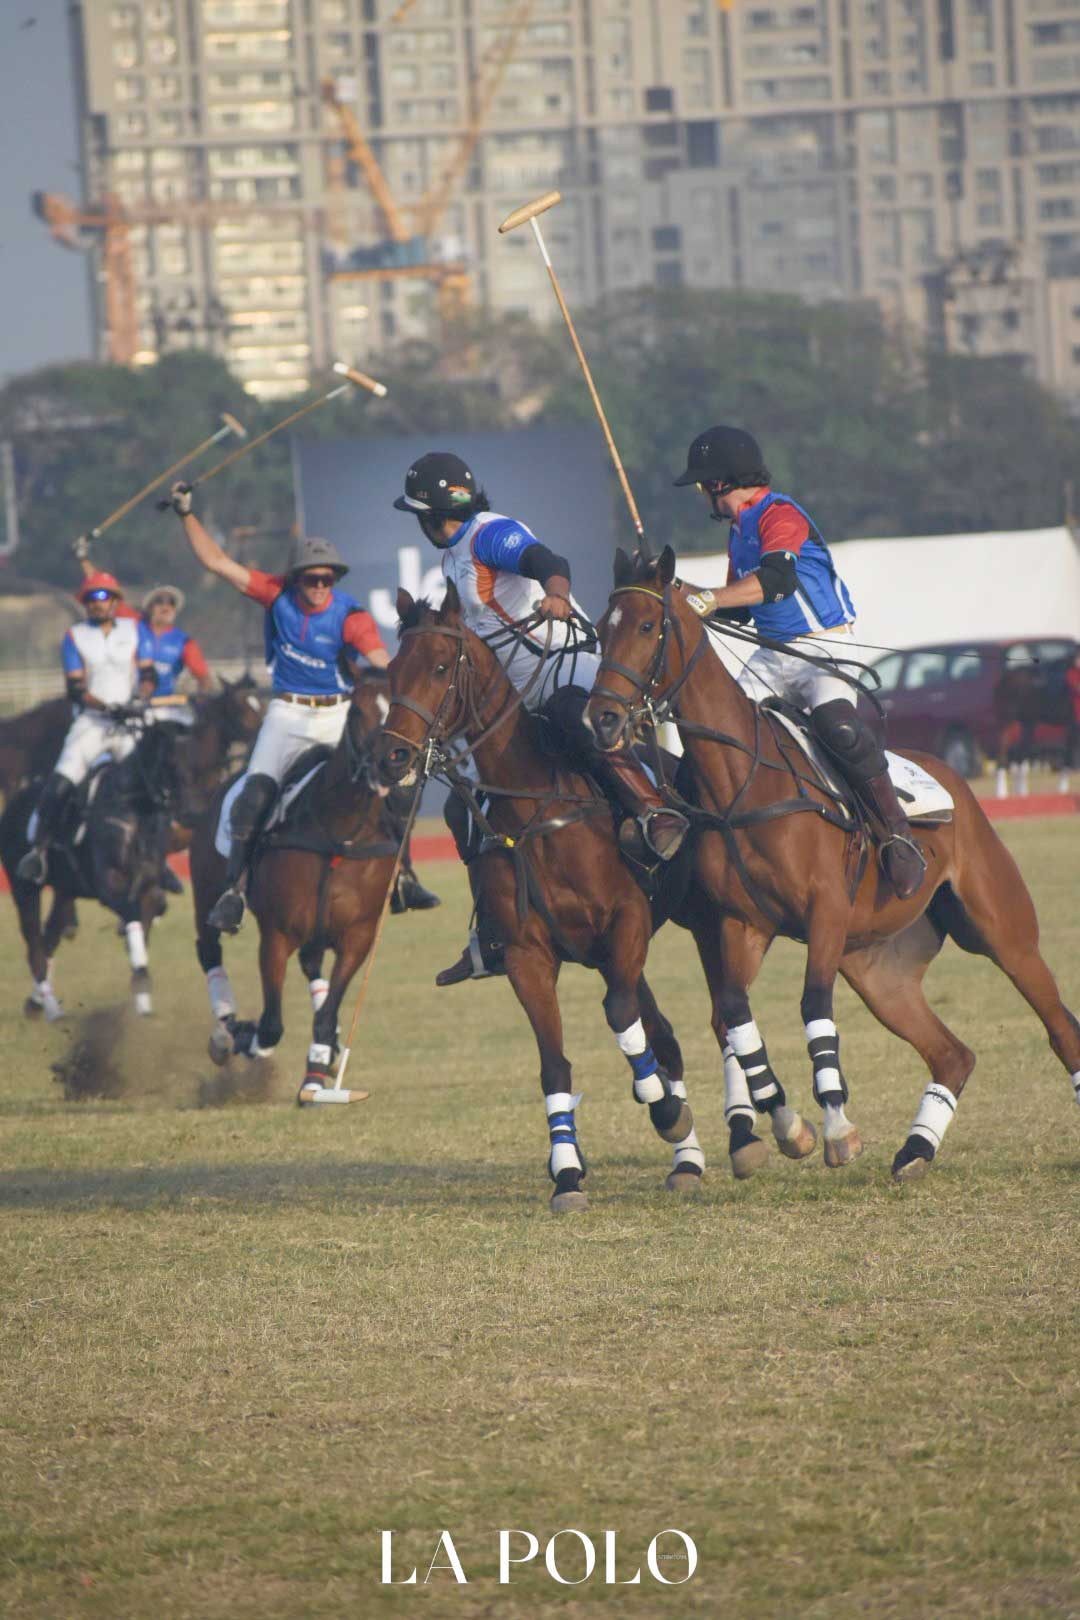 Millionaire Asia Polo Cup